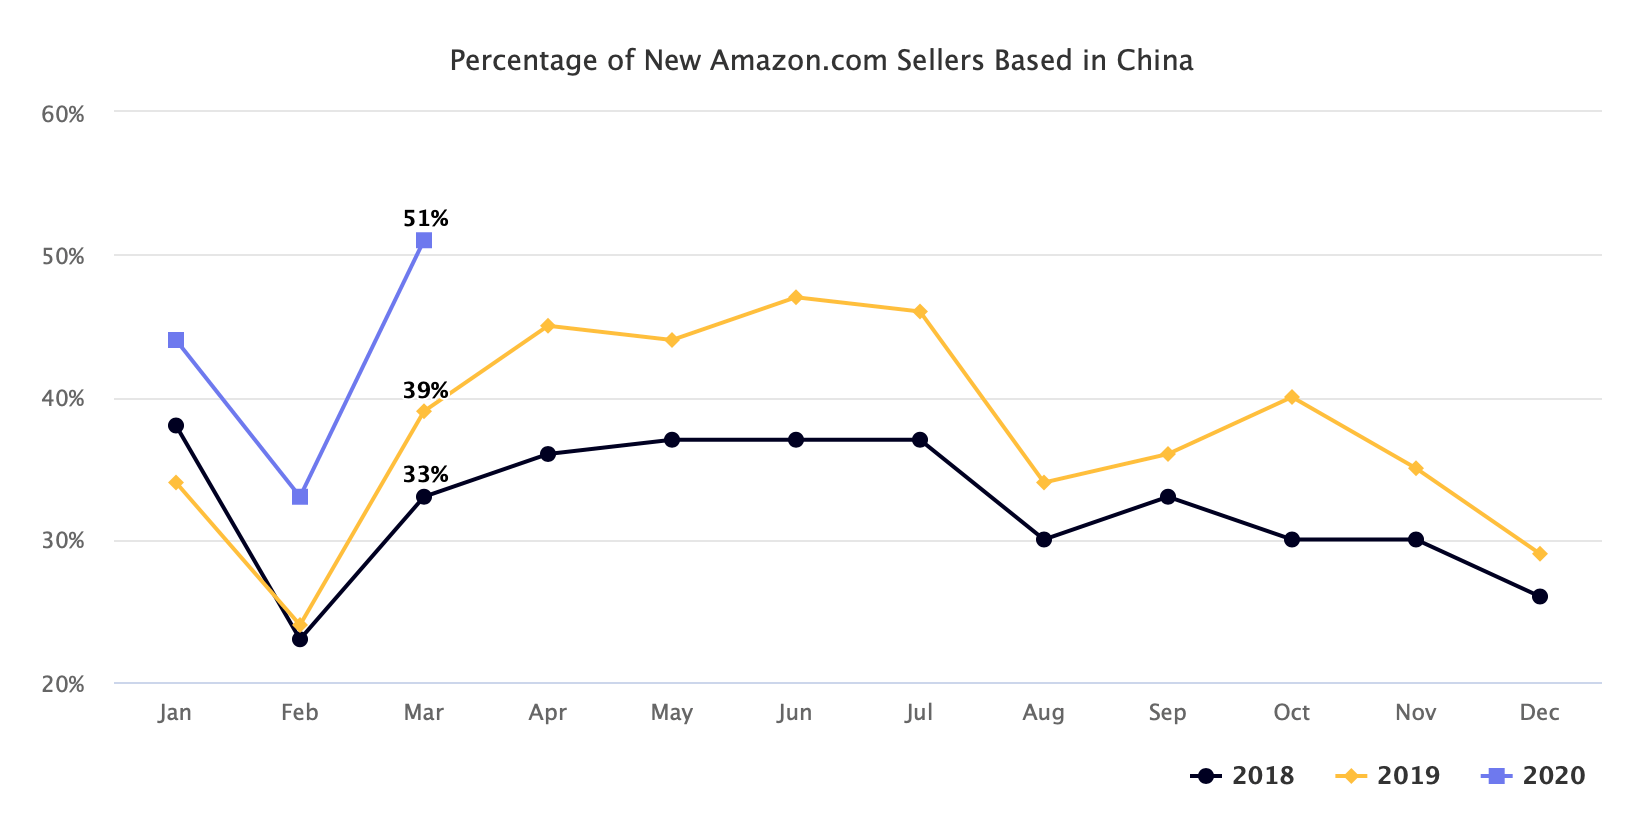 Percentage of New Amazon.com Sellers Based in China